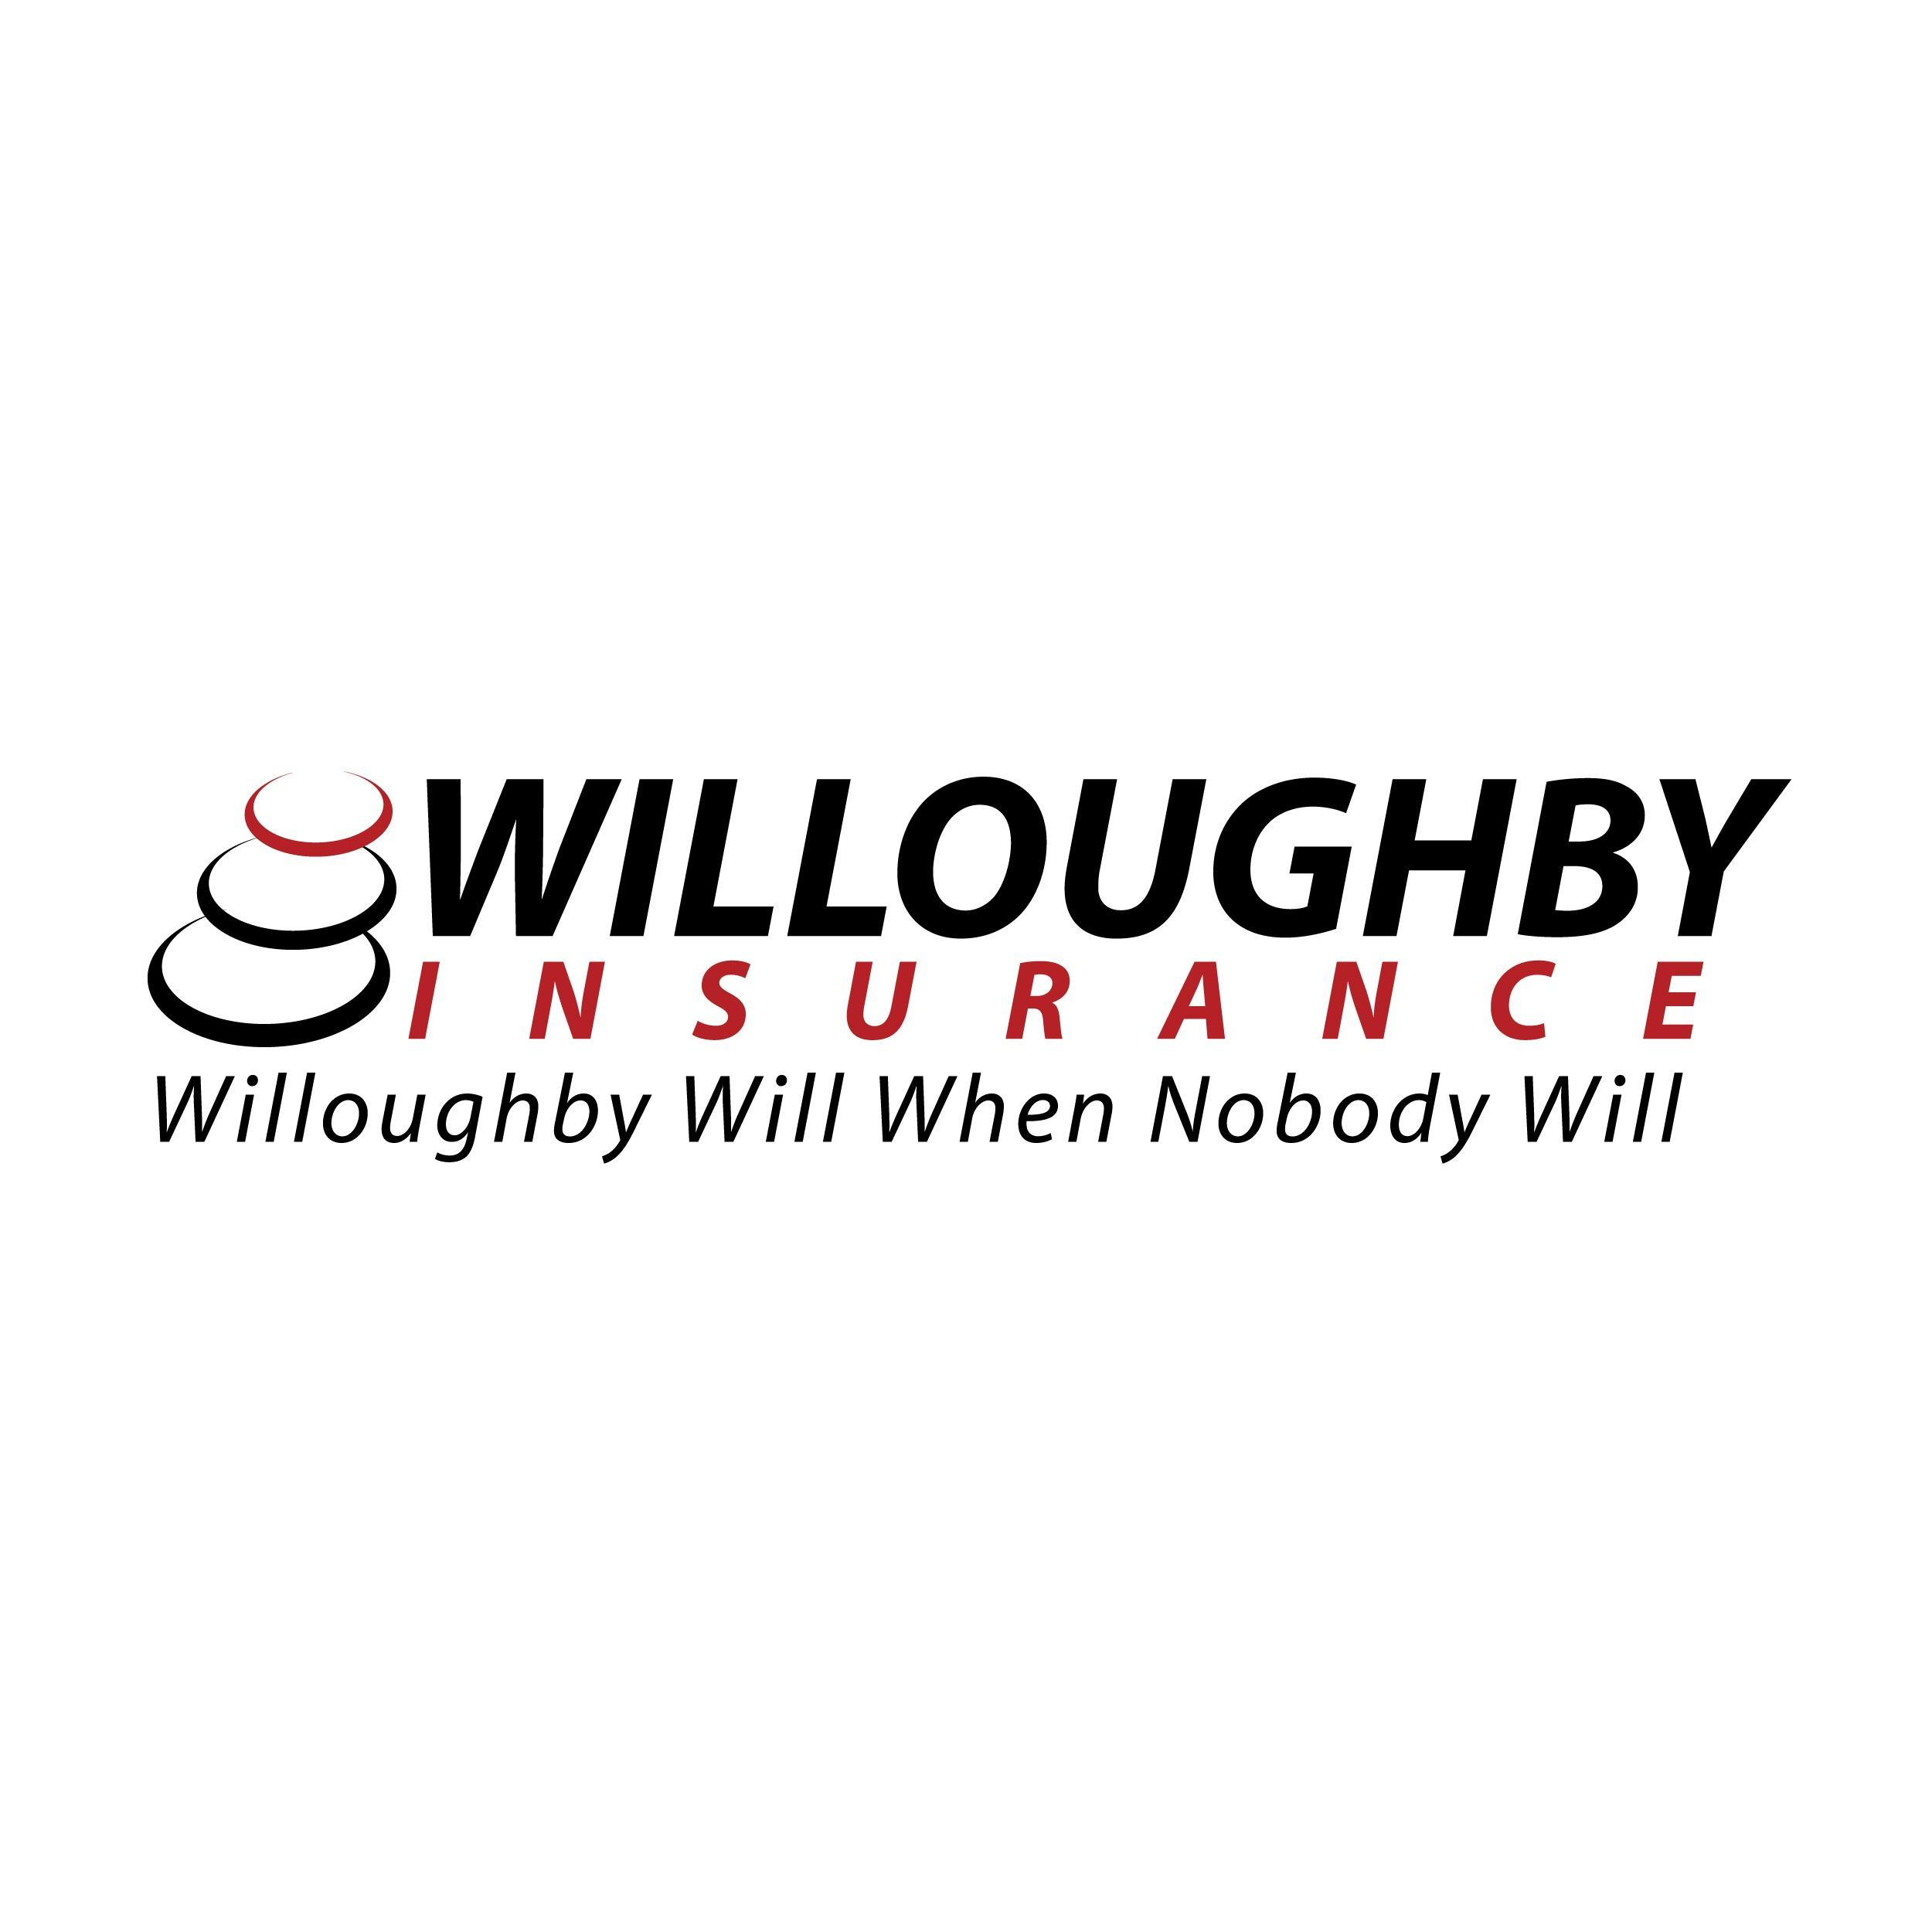 Willoughby Insurance image 1